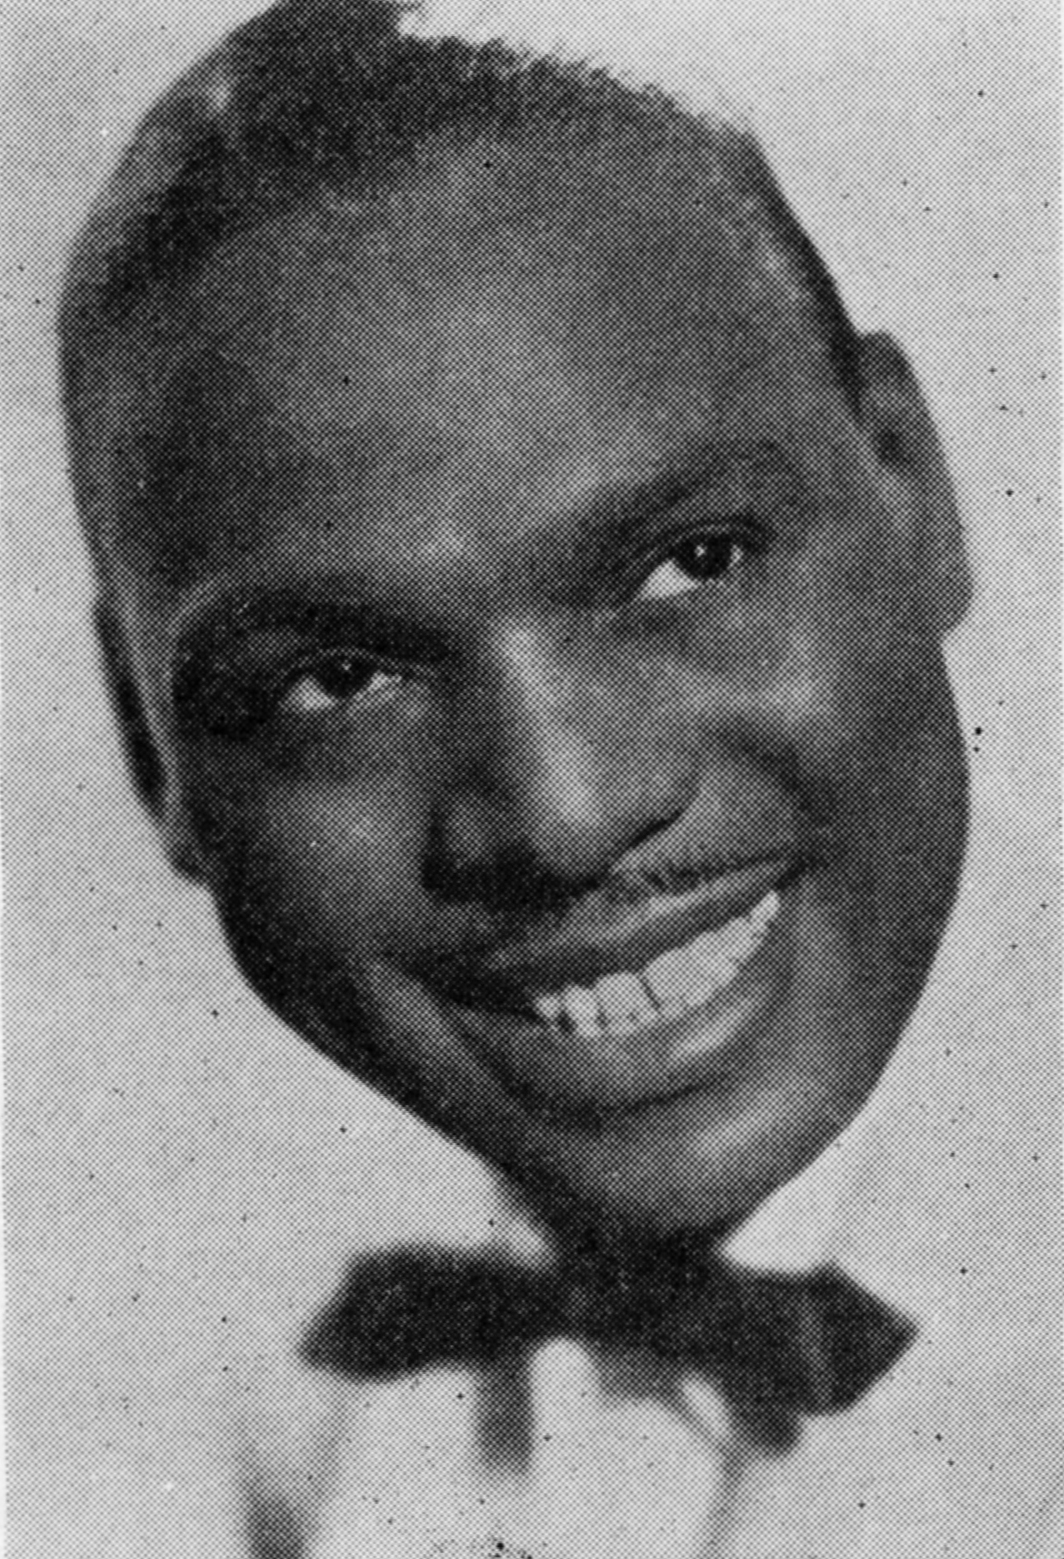 Hines in 1936